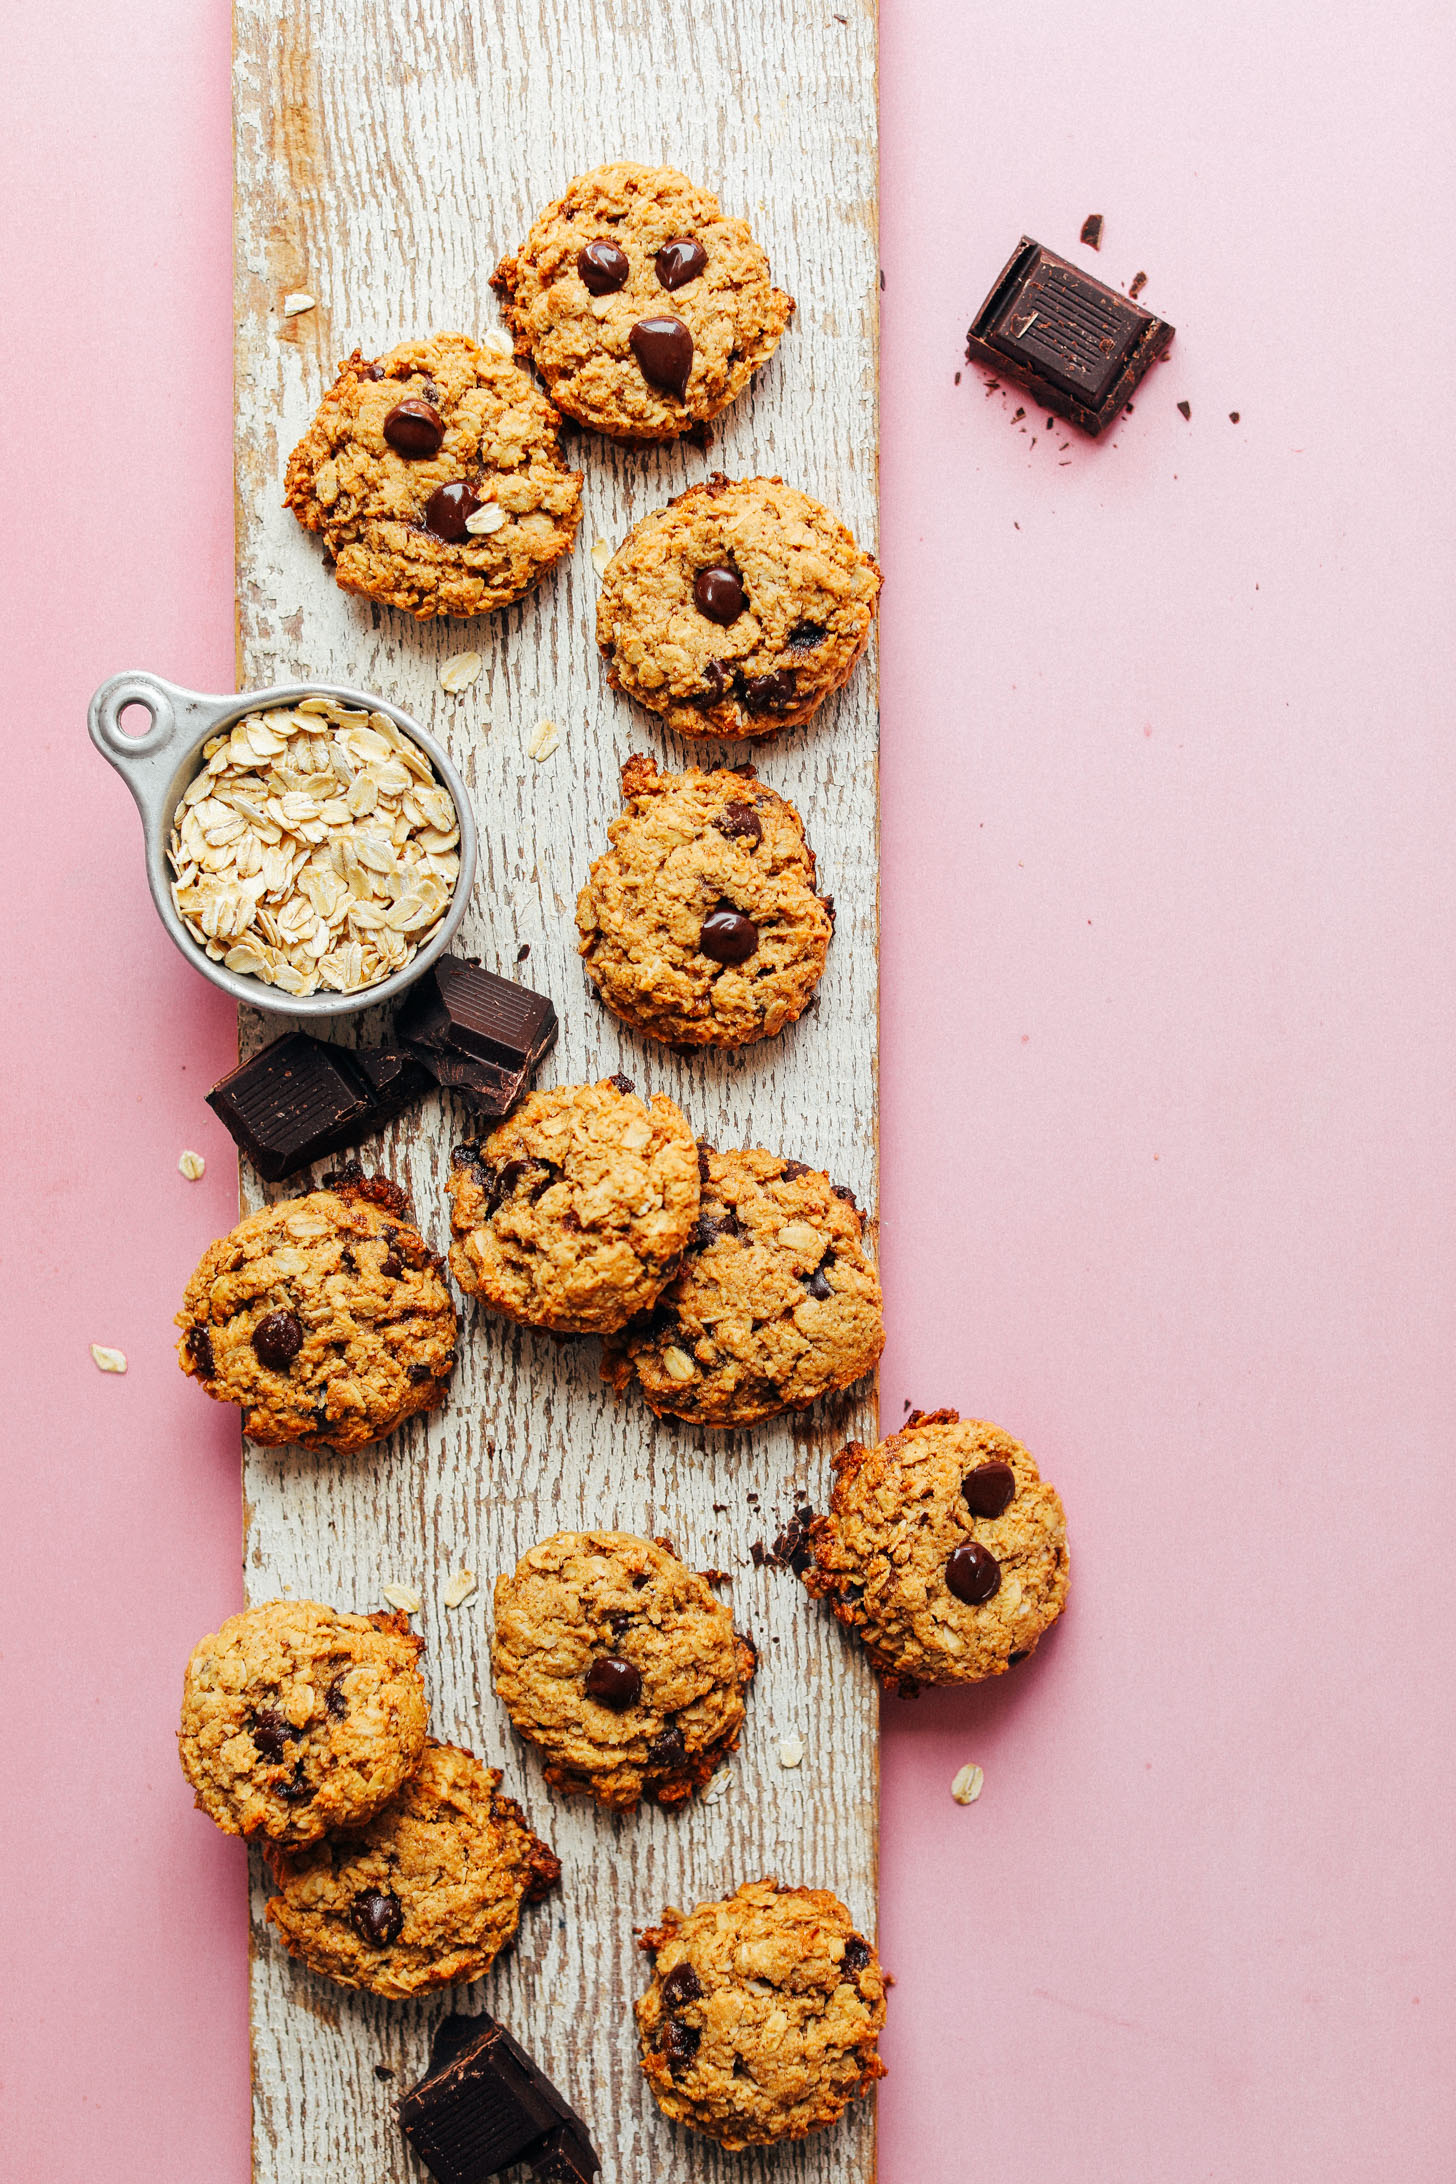 Display of healthy gluten-free vegan Oatmeal Chocolate Chip Cookies